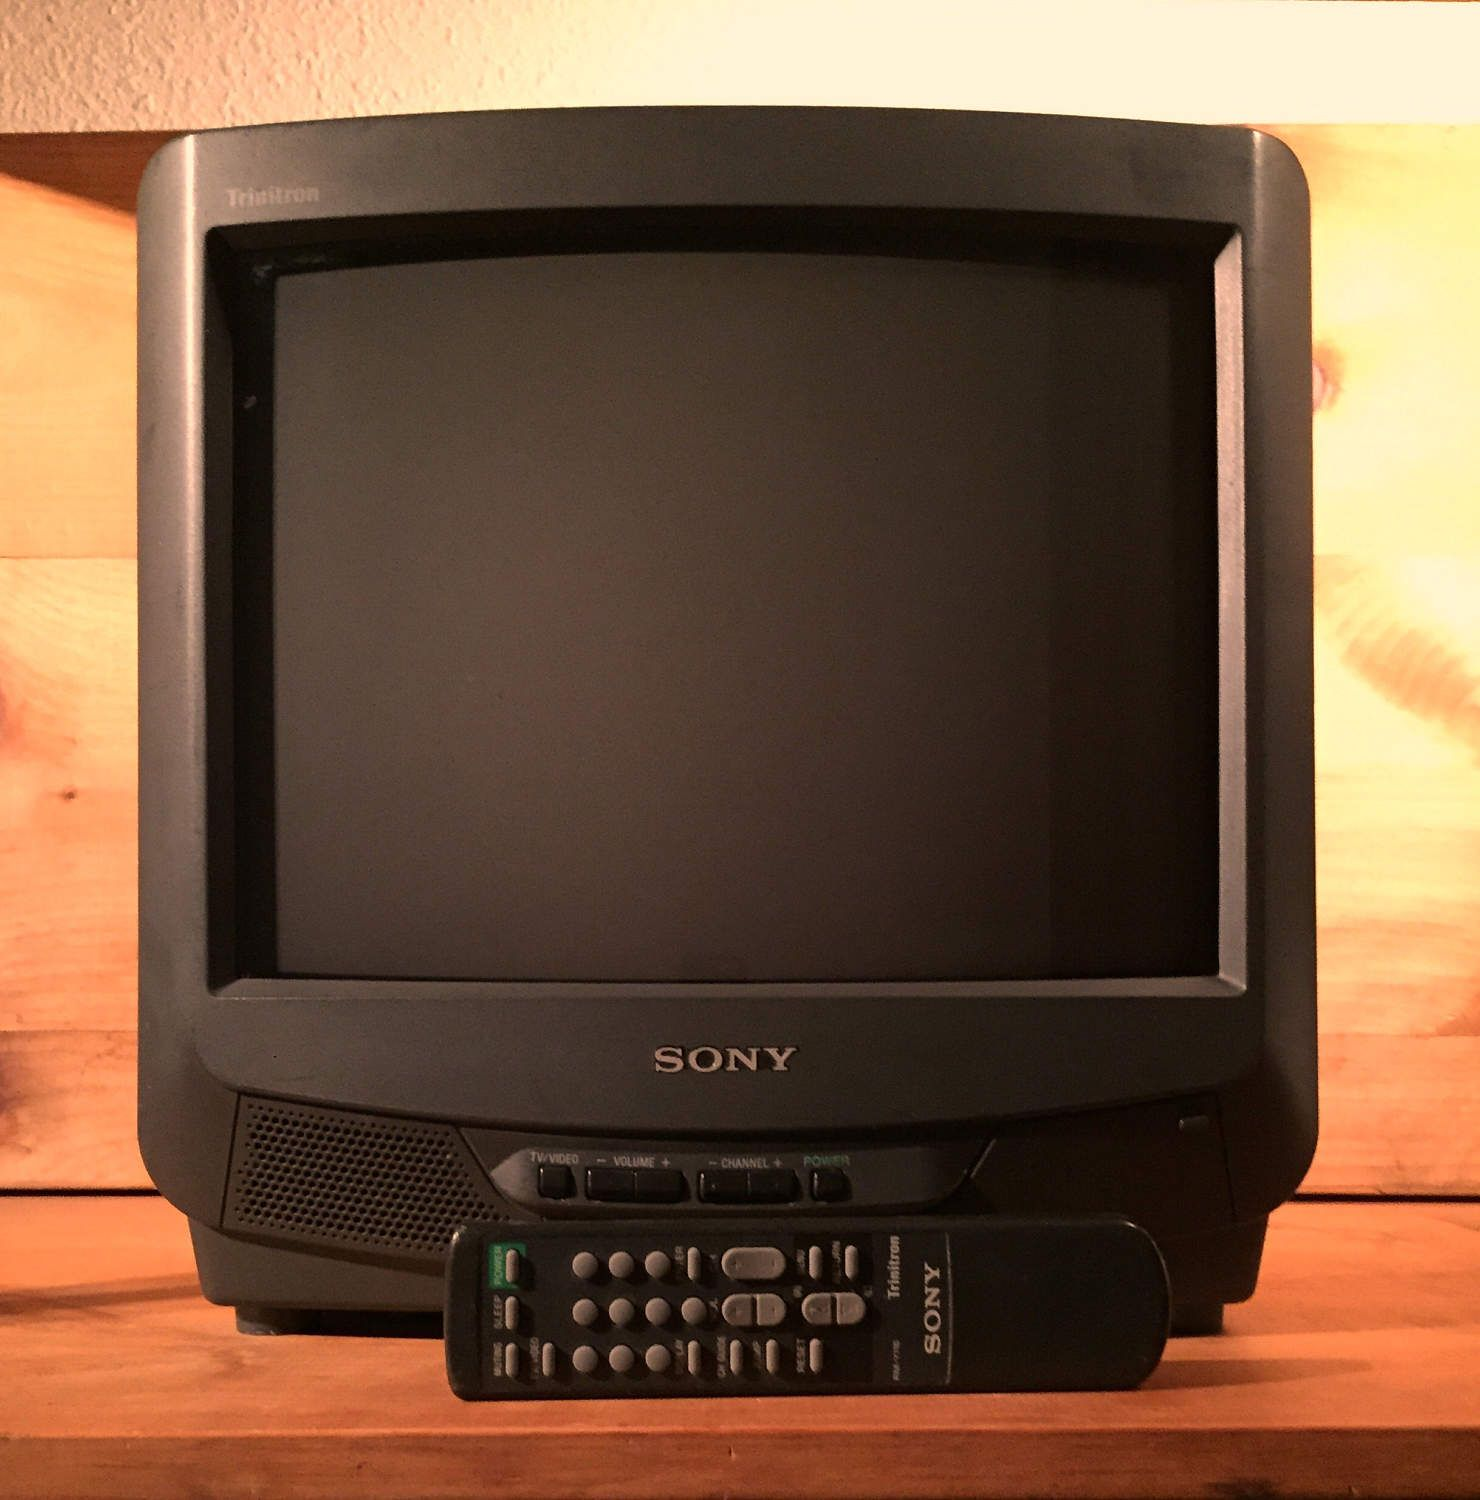 Excited To Share The Latest Addition To My Etsy Shop Sale Like New Sony Trinitron 13 Color Crt Tv Television W Sharpness Remote Dvd Vh Crt Tv Sony Crt